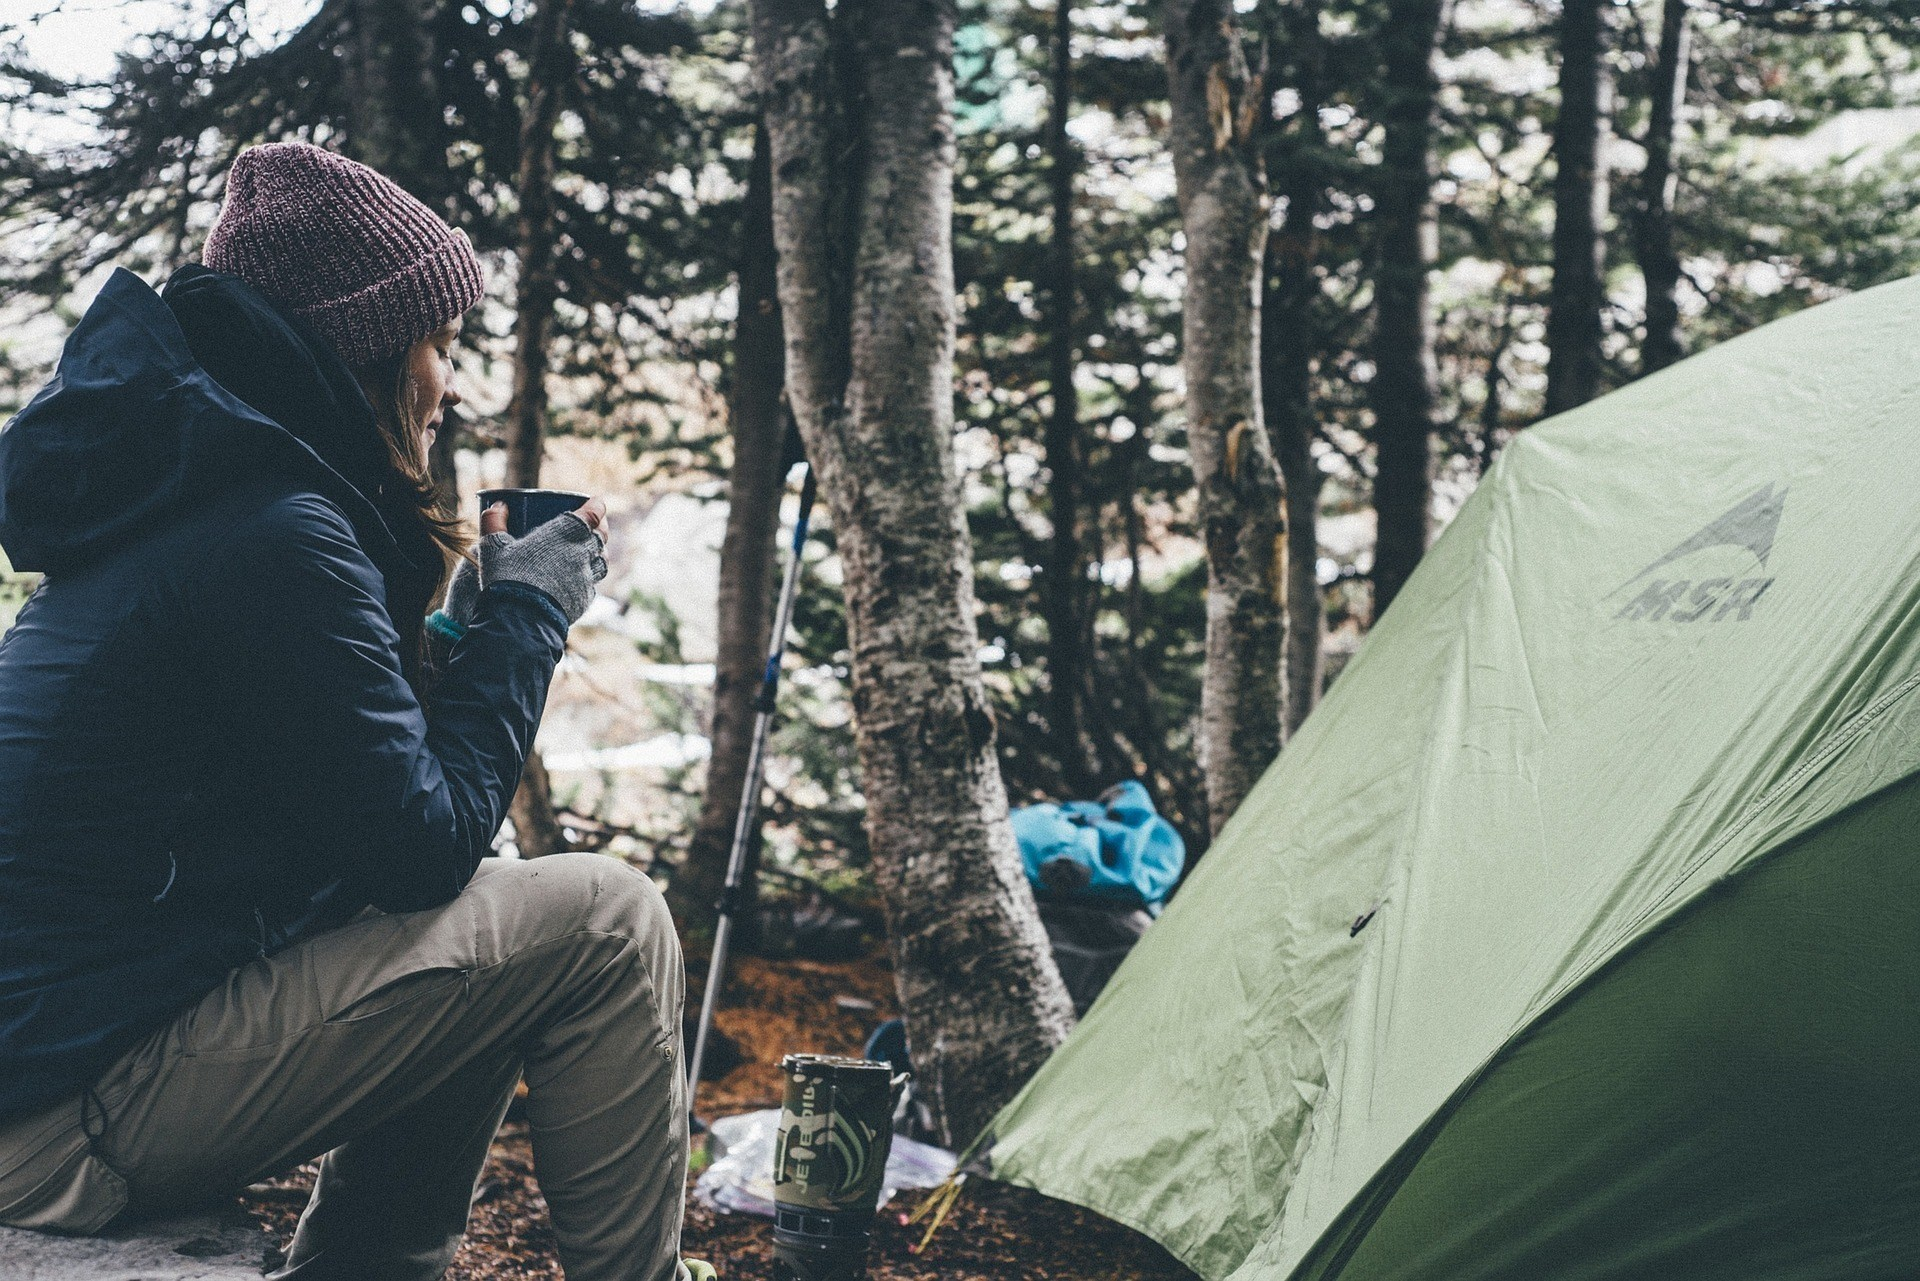 Woman drinking coffee is wearing a cap and sweater for the cold weather in the forest and beside her is her camping equipment